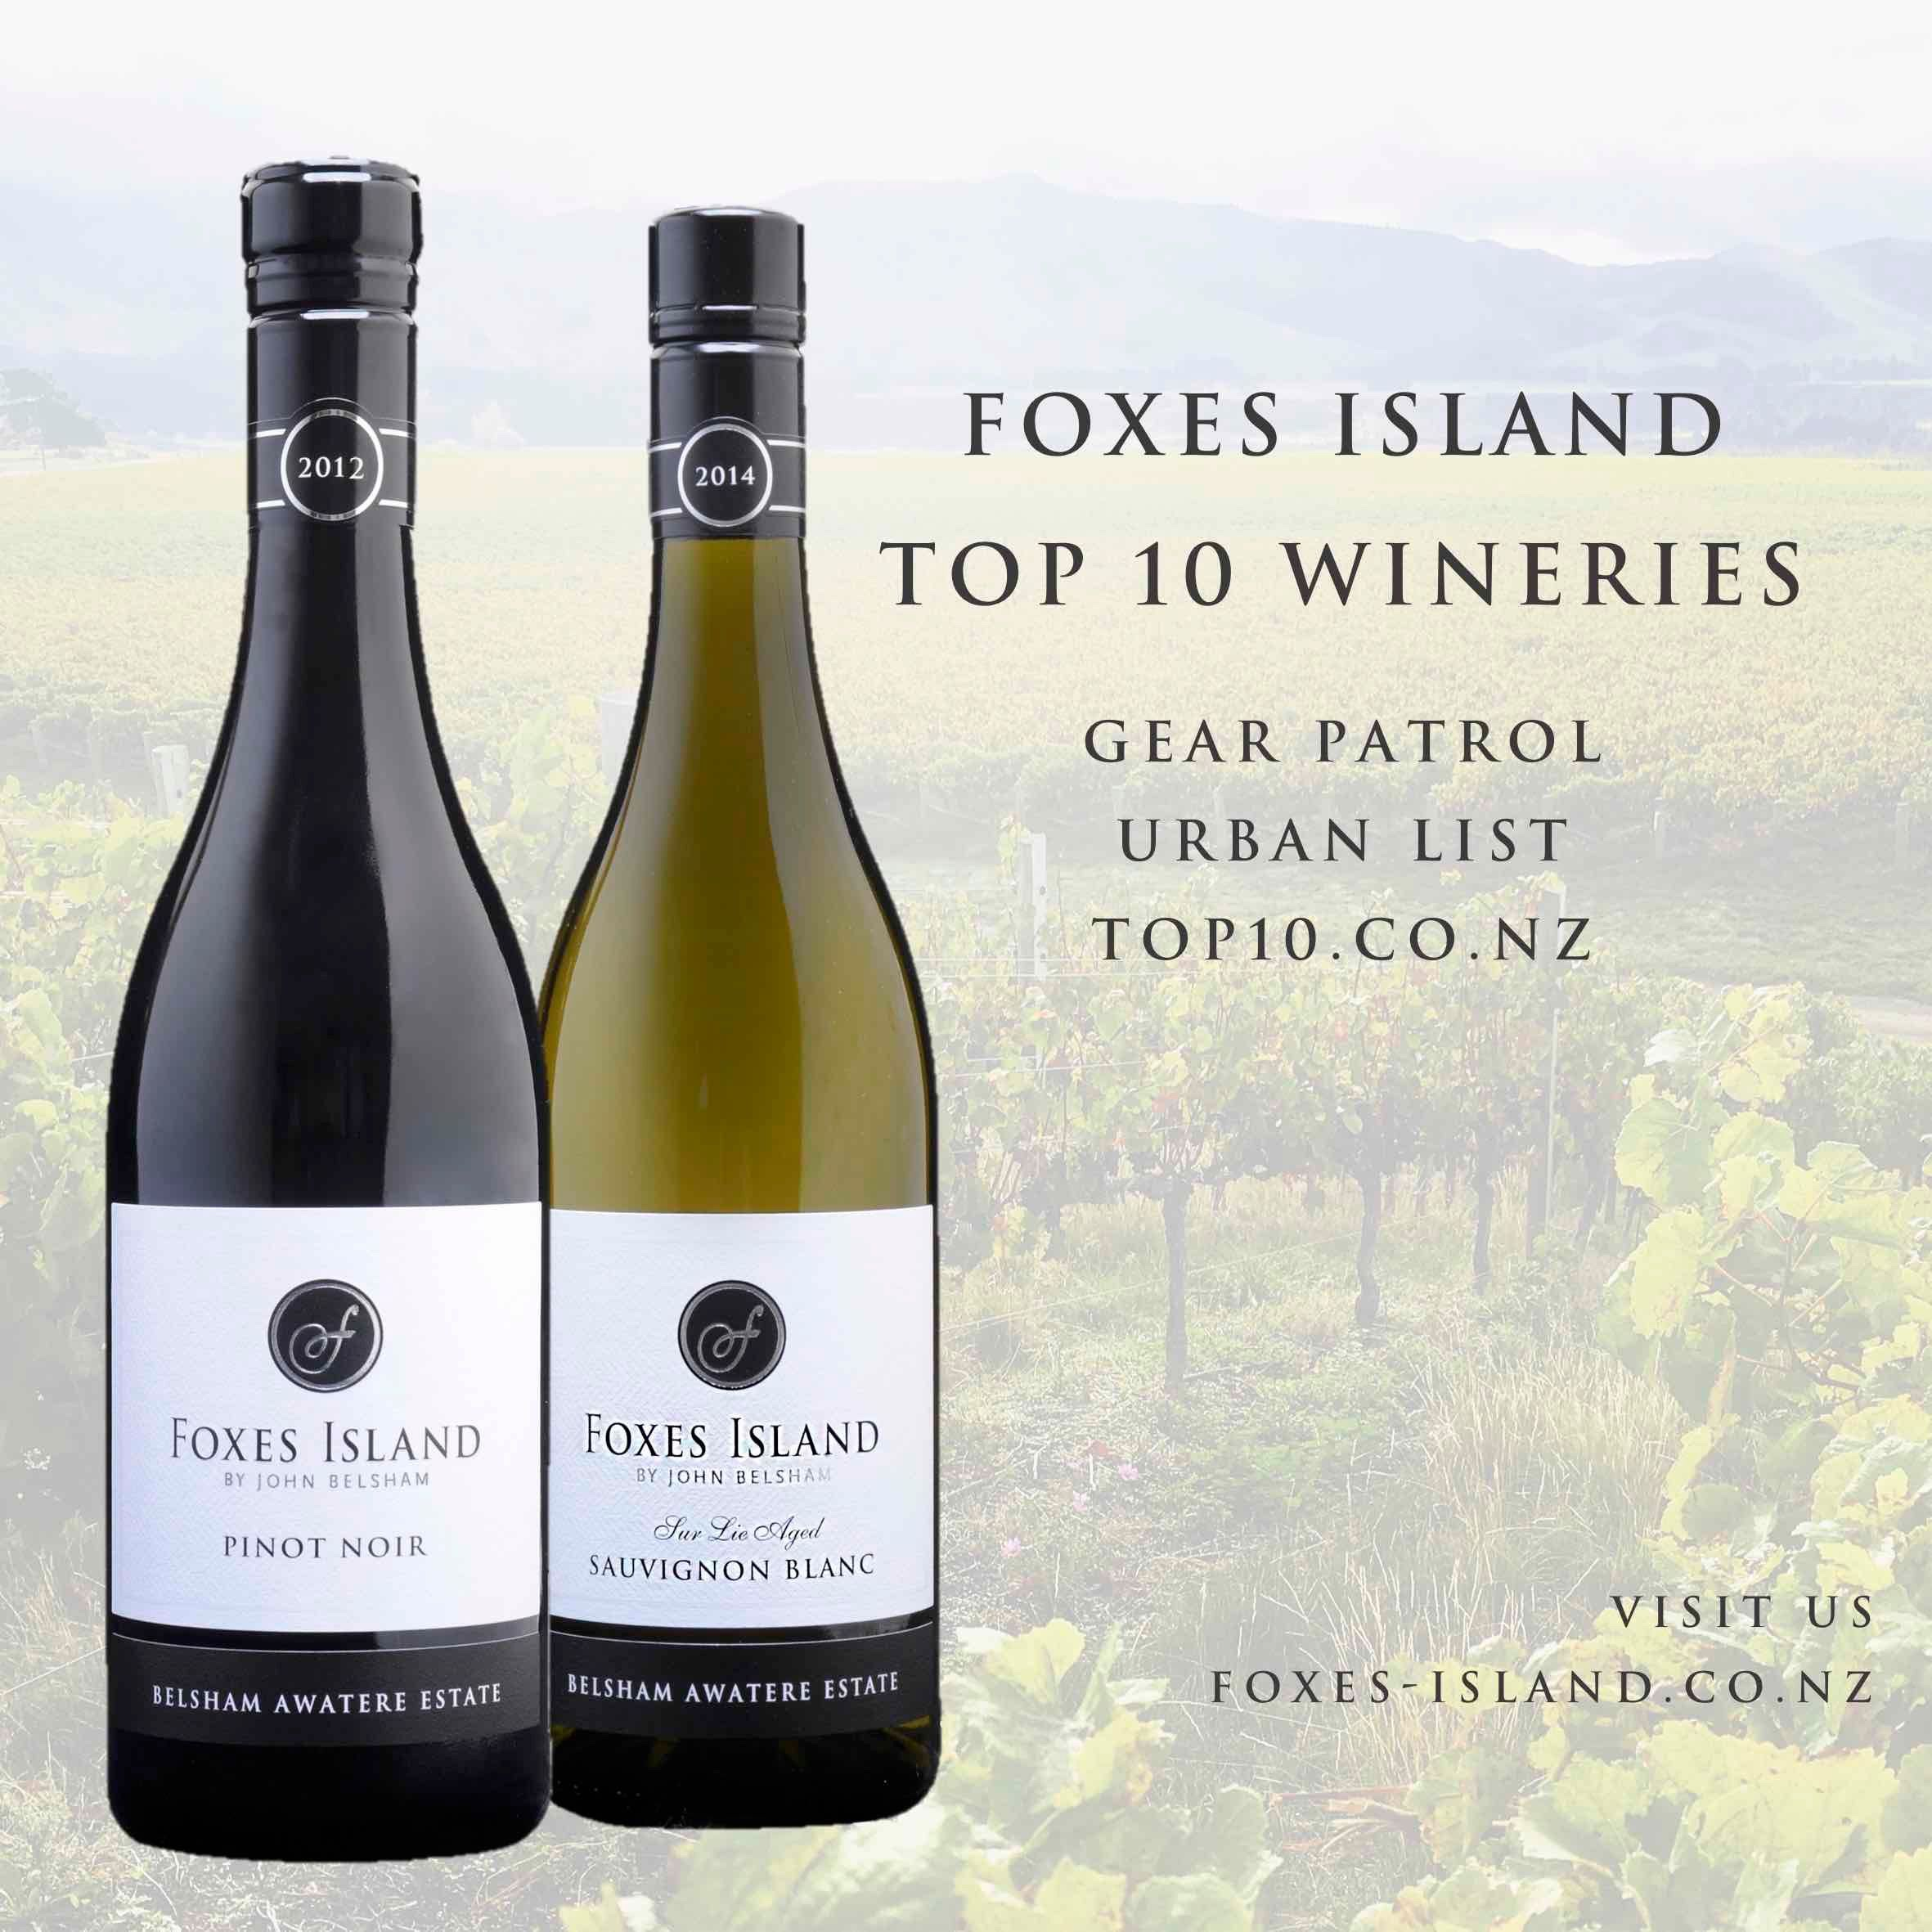 Foxes Island Wines Top 10 Wineries